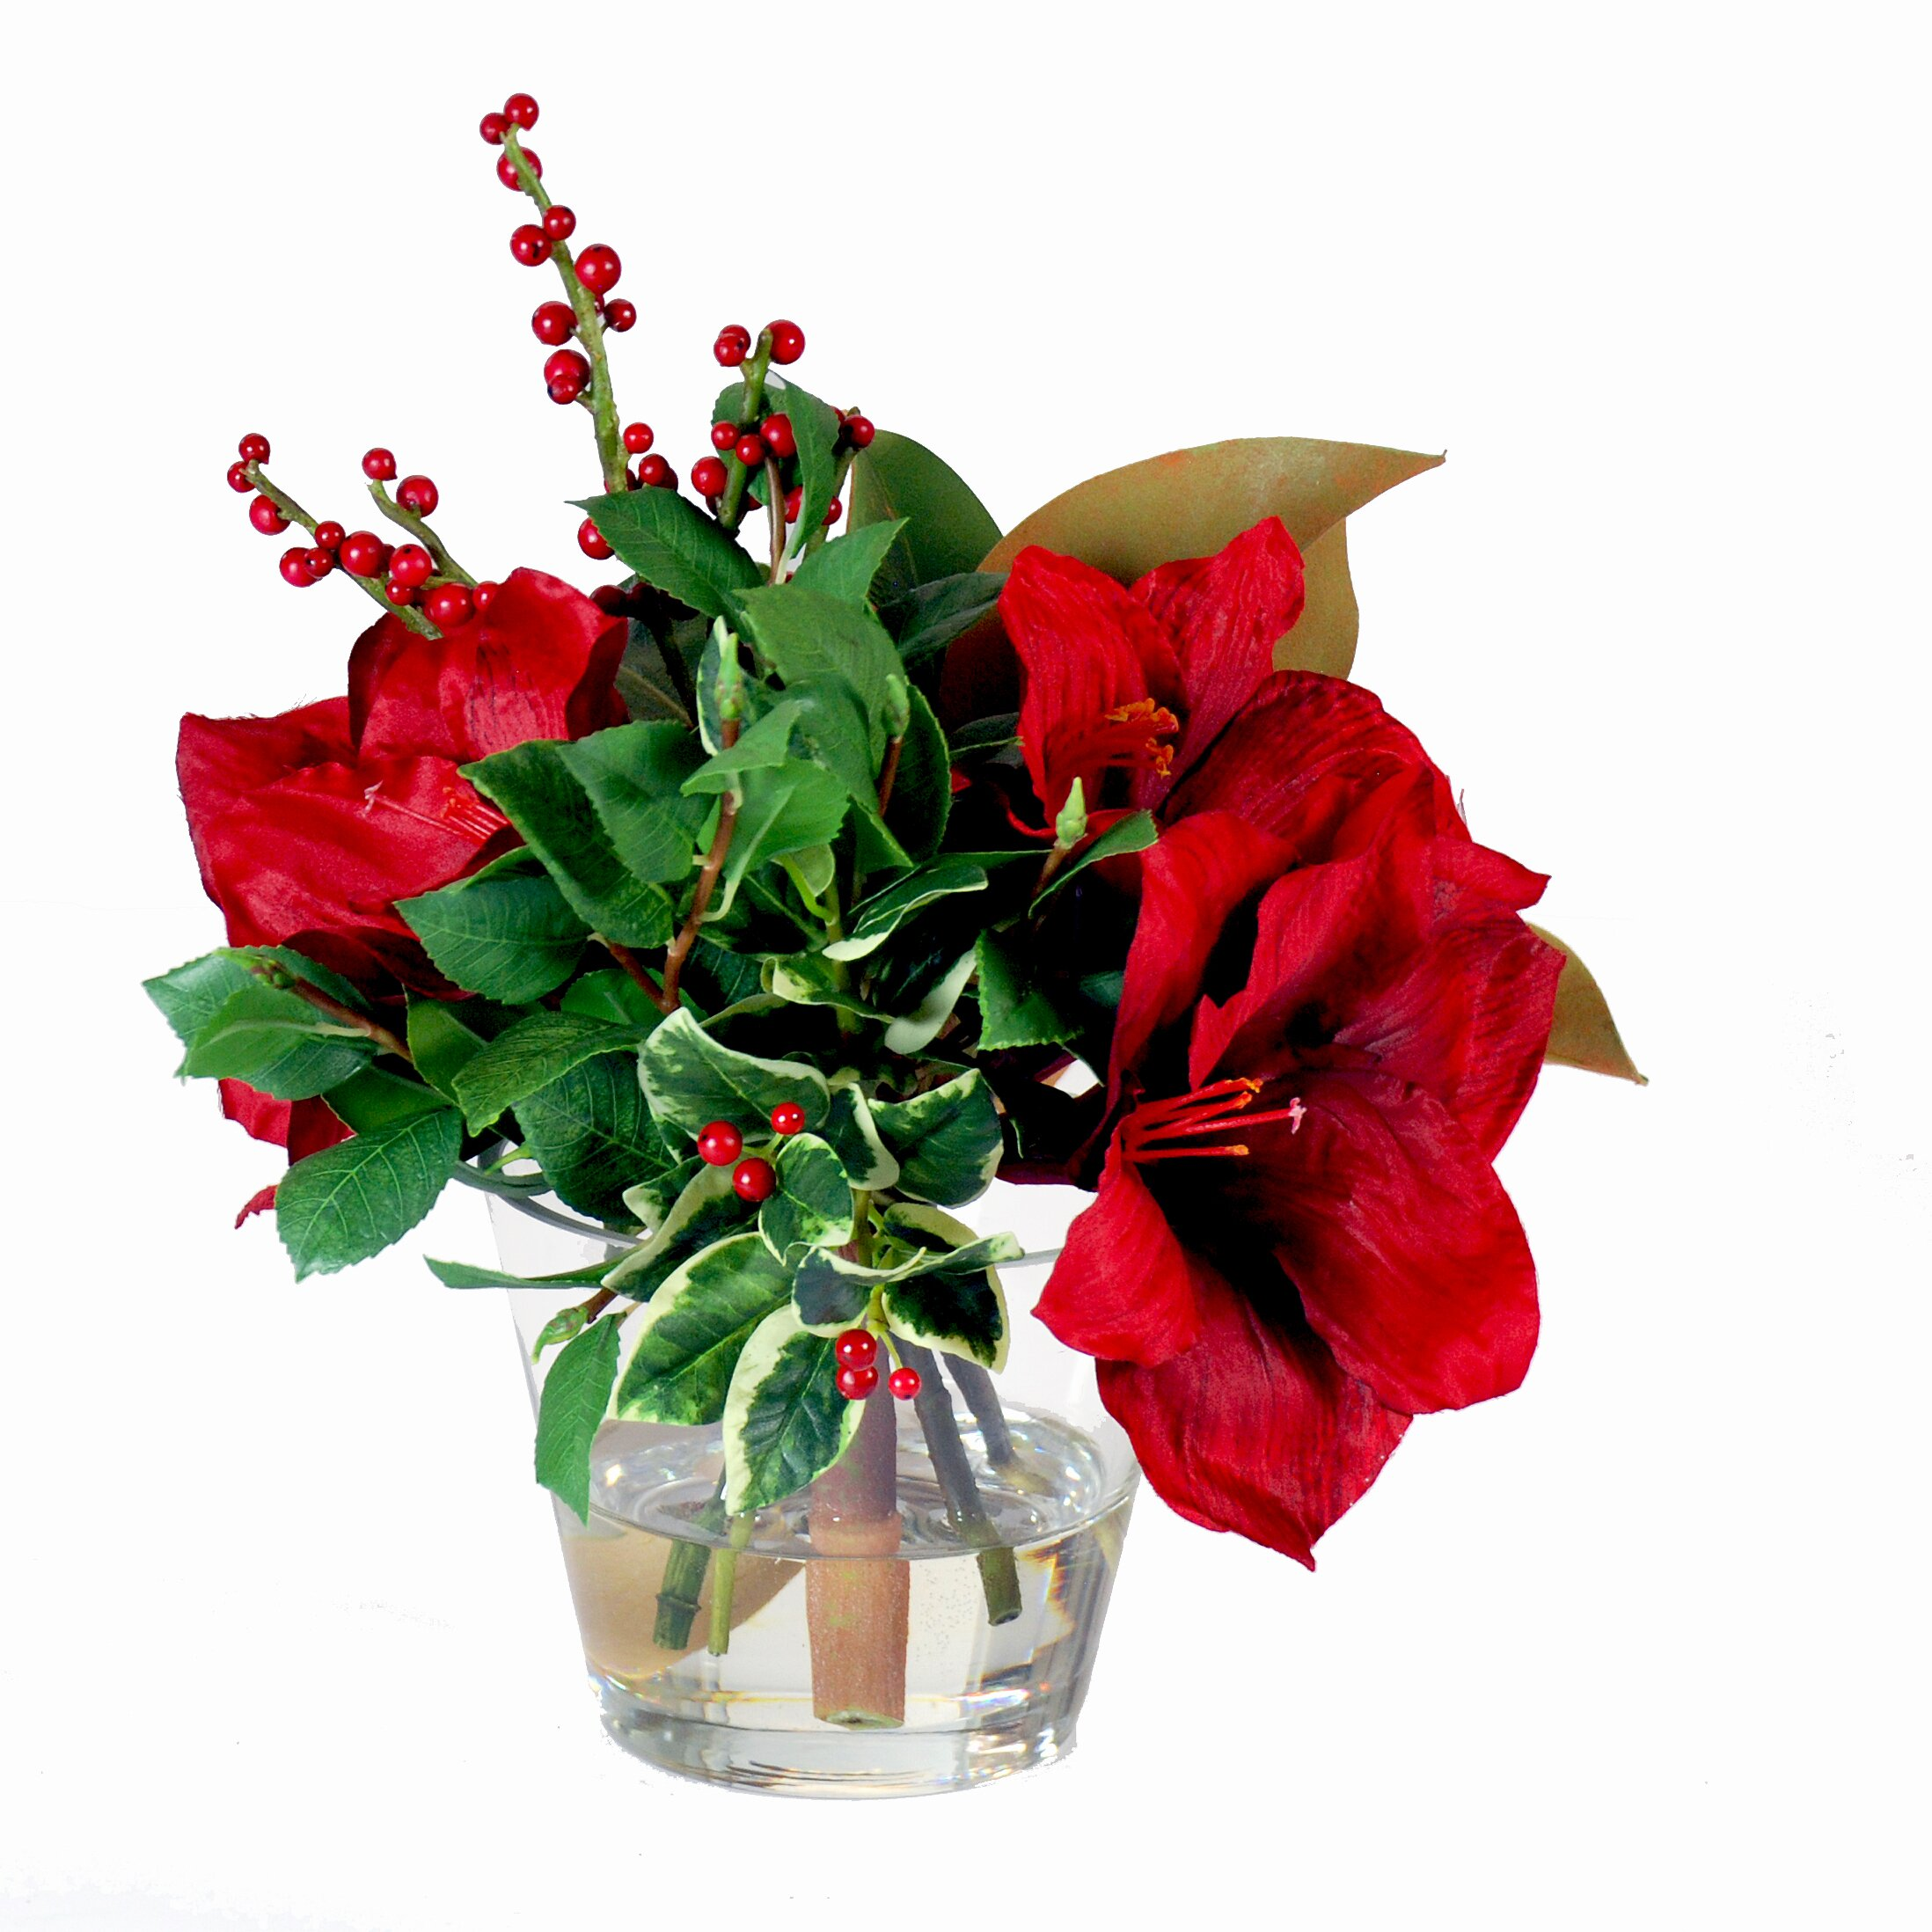 Jane seymour botanicals amaryllis holiday glass vase